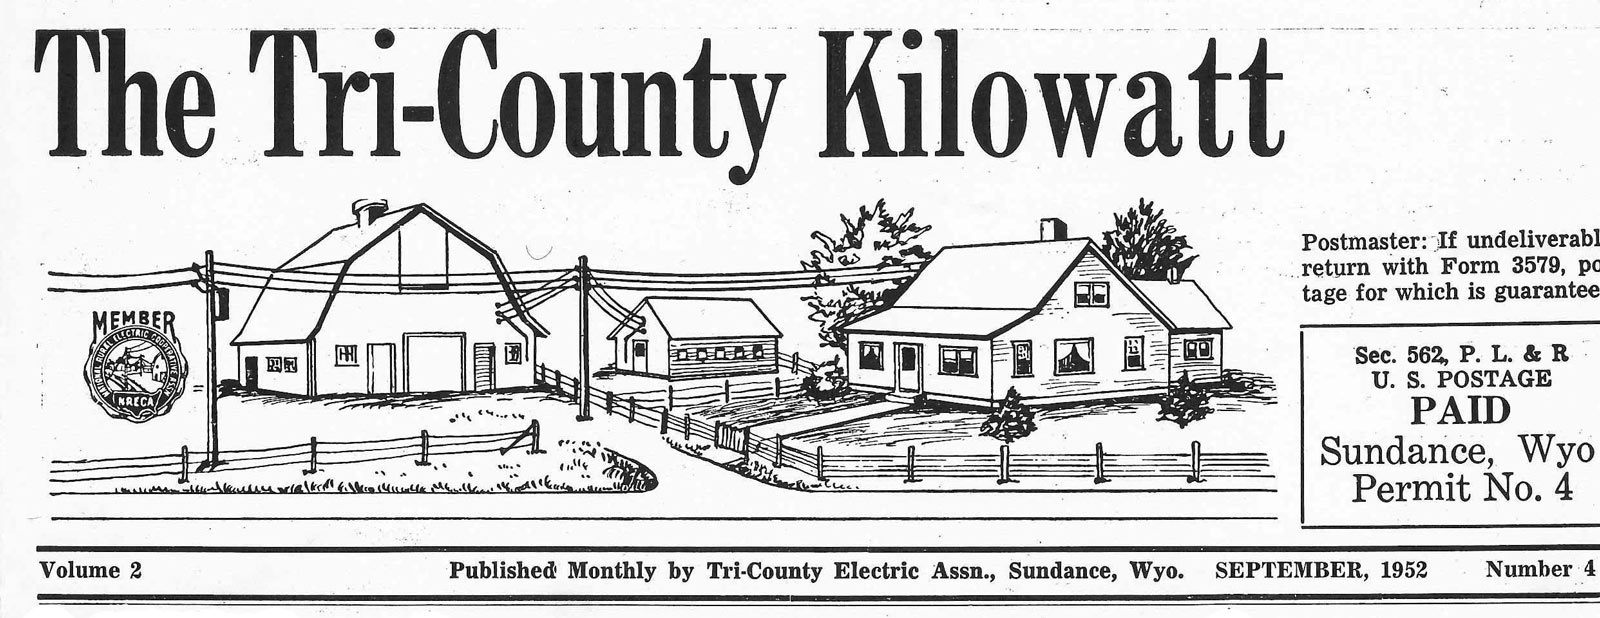 Tri-County Electric Association (TCEA)